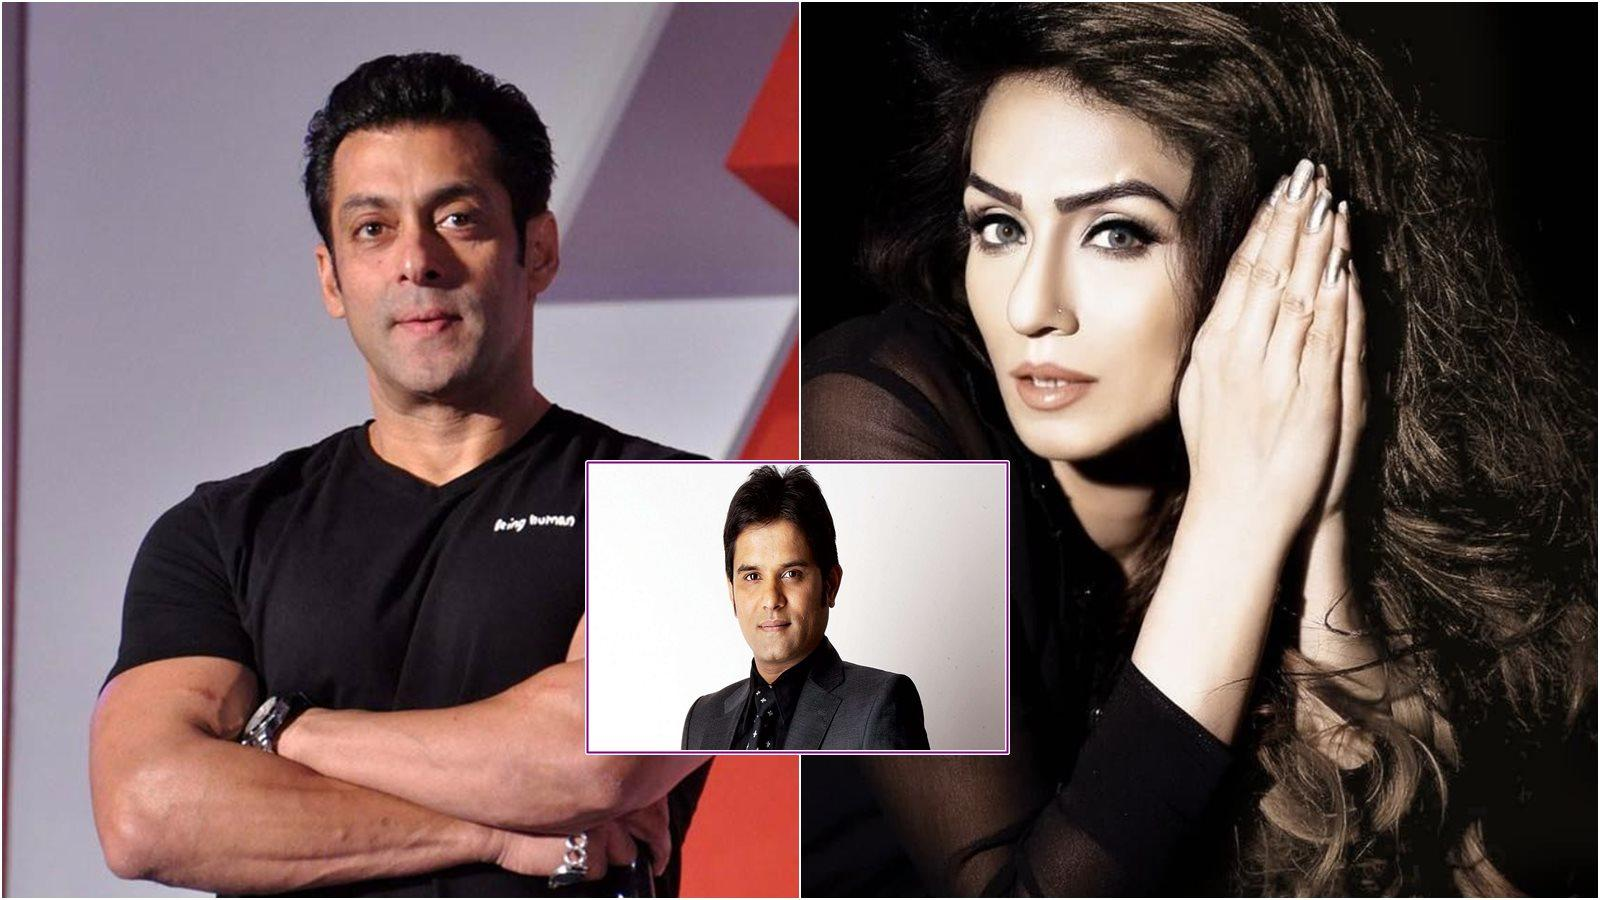 Salman Khan's 'Being Human' CEO Manish Mandhana accused of physical assault by actor Andria D'Souza